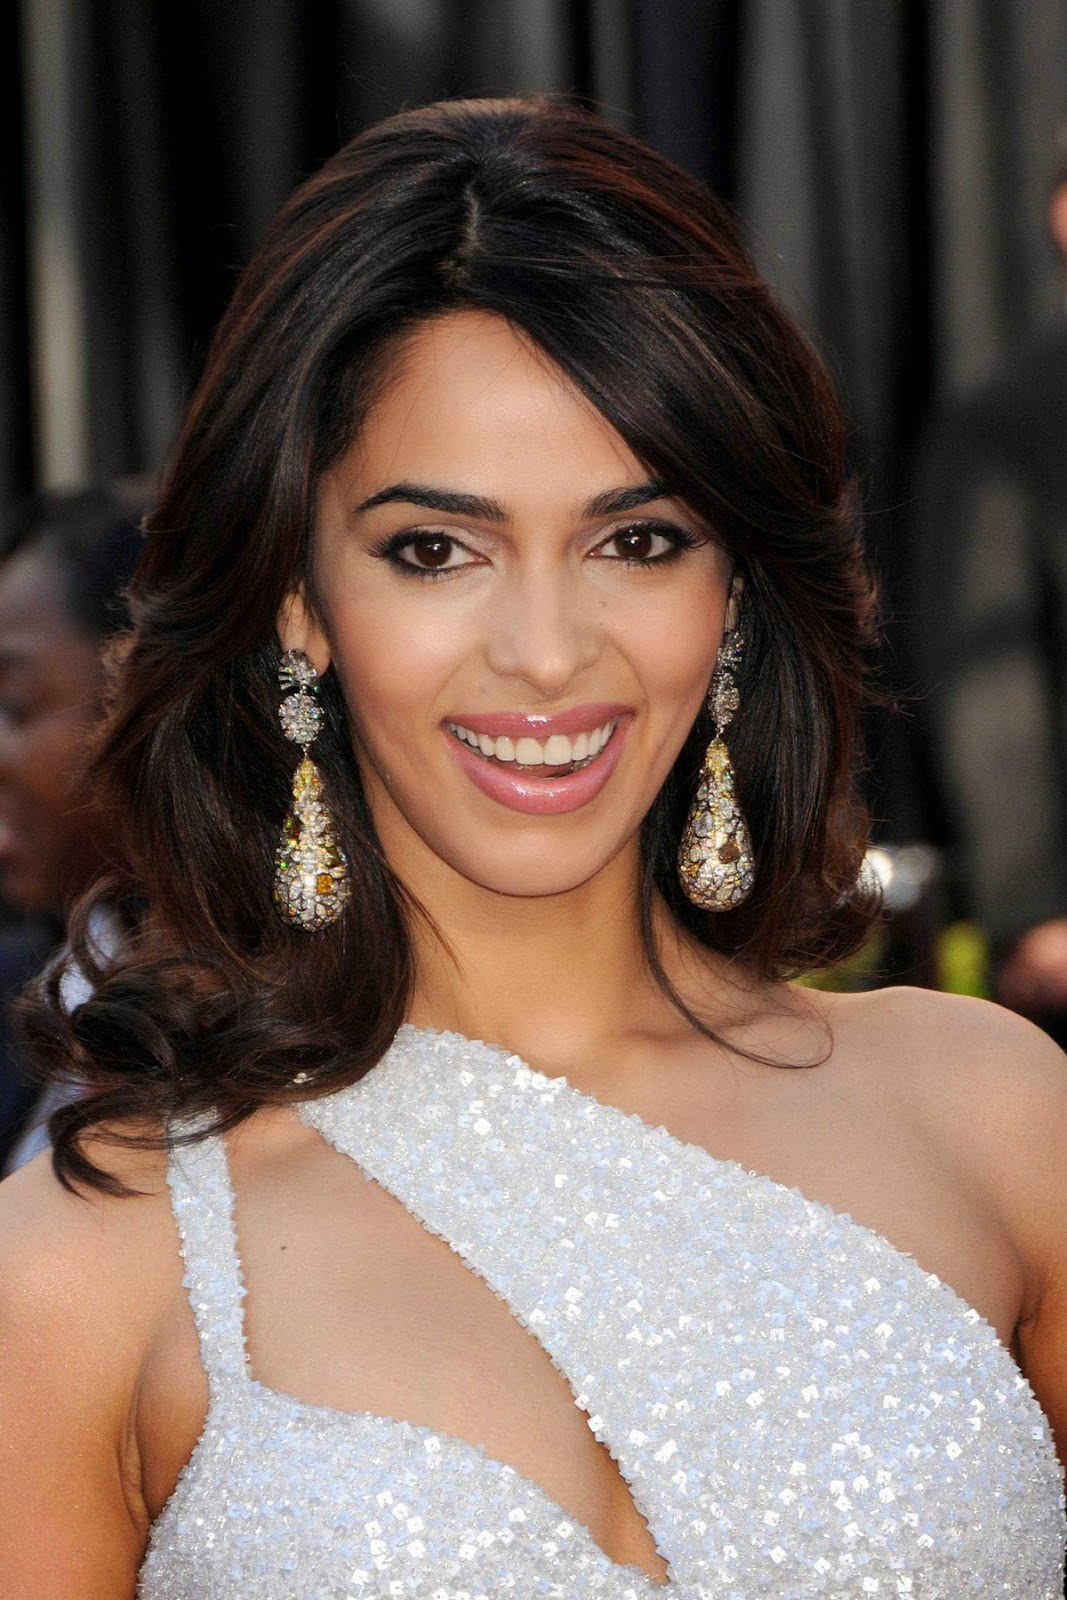 mallika sherawat | hd wallpapers (high definition) | free background